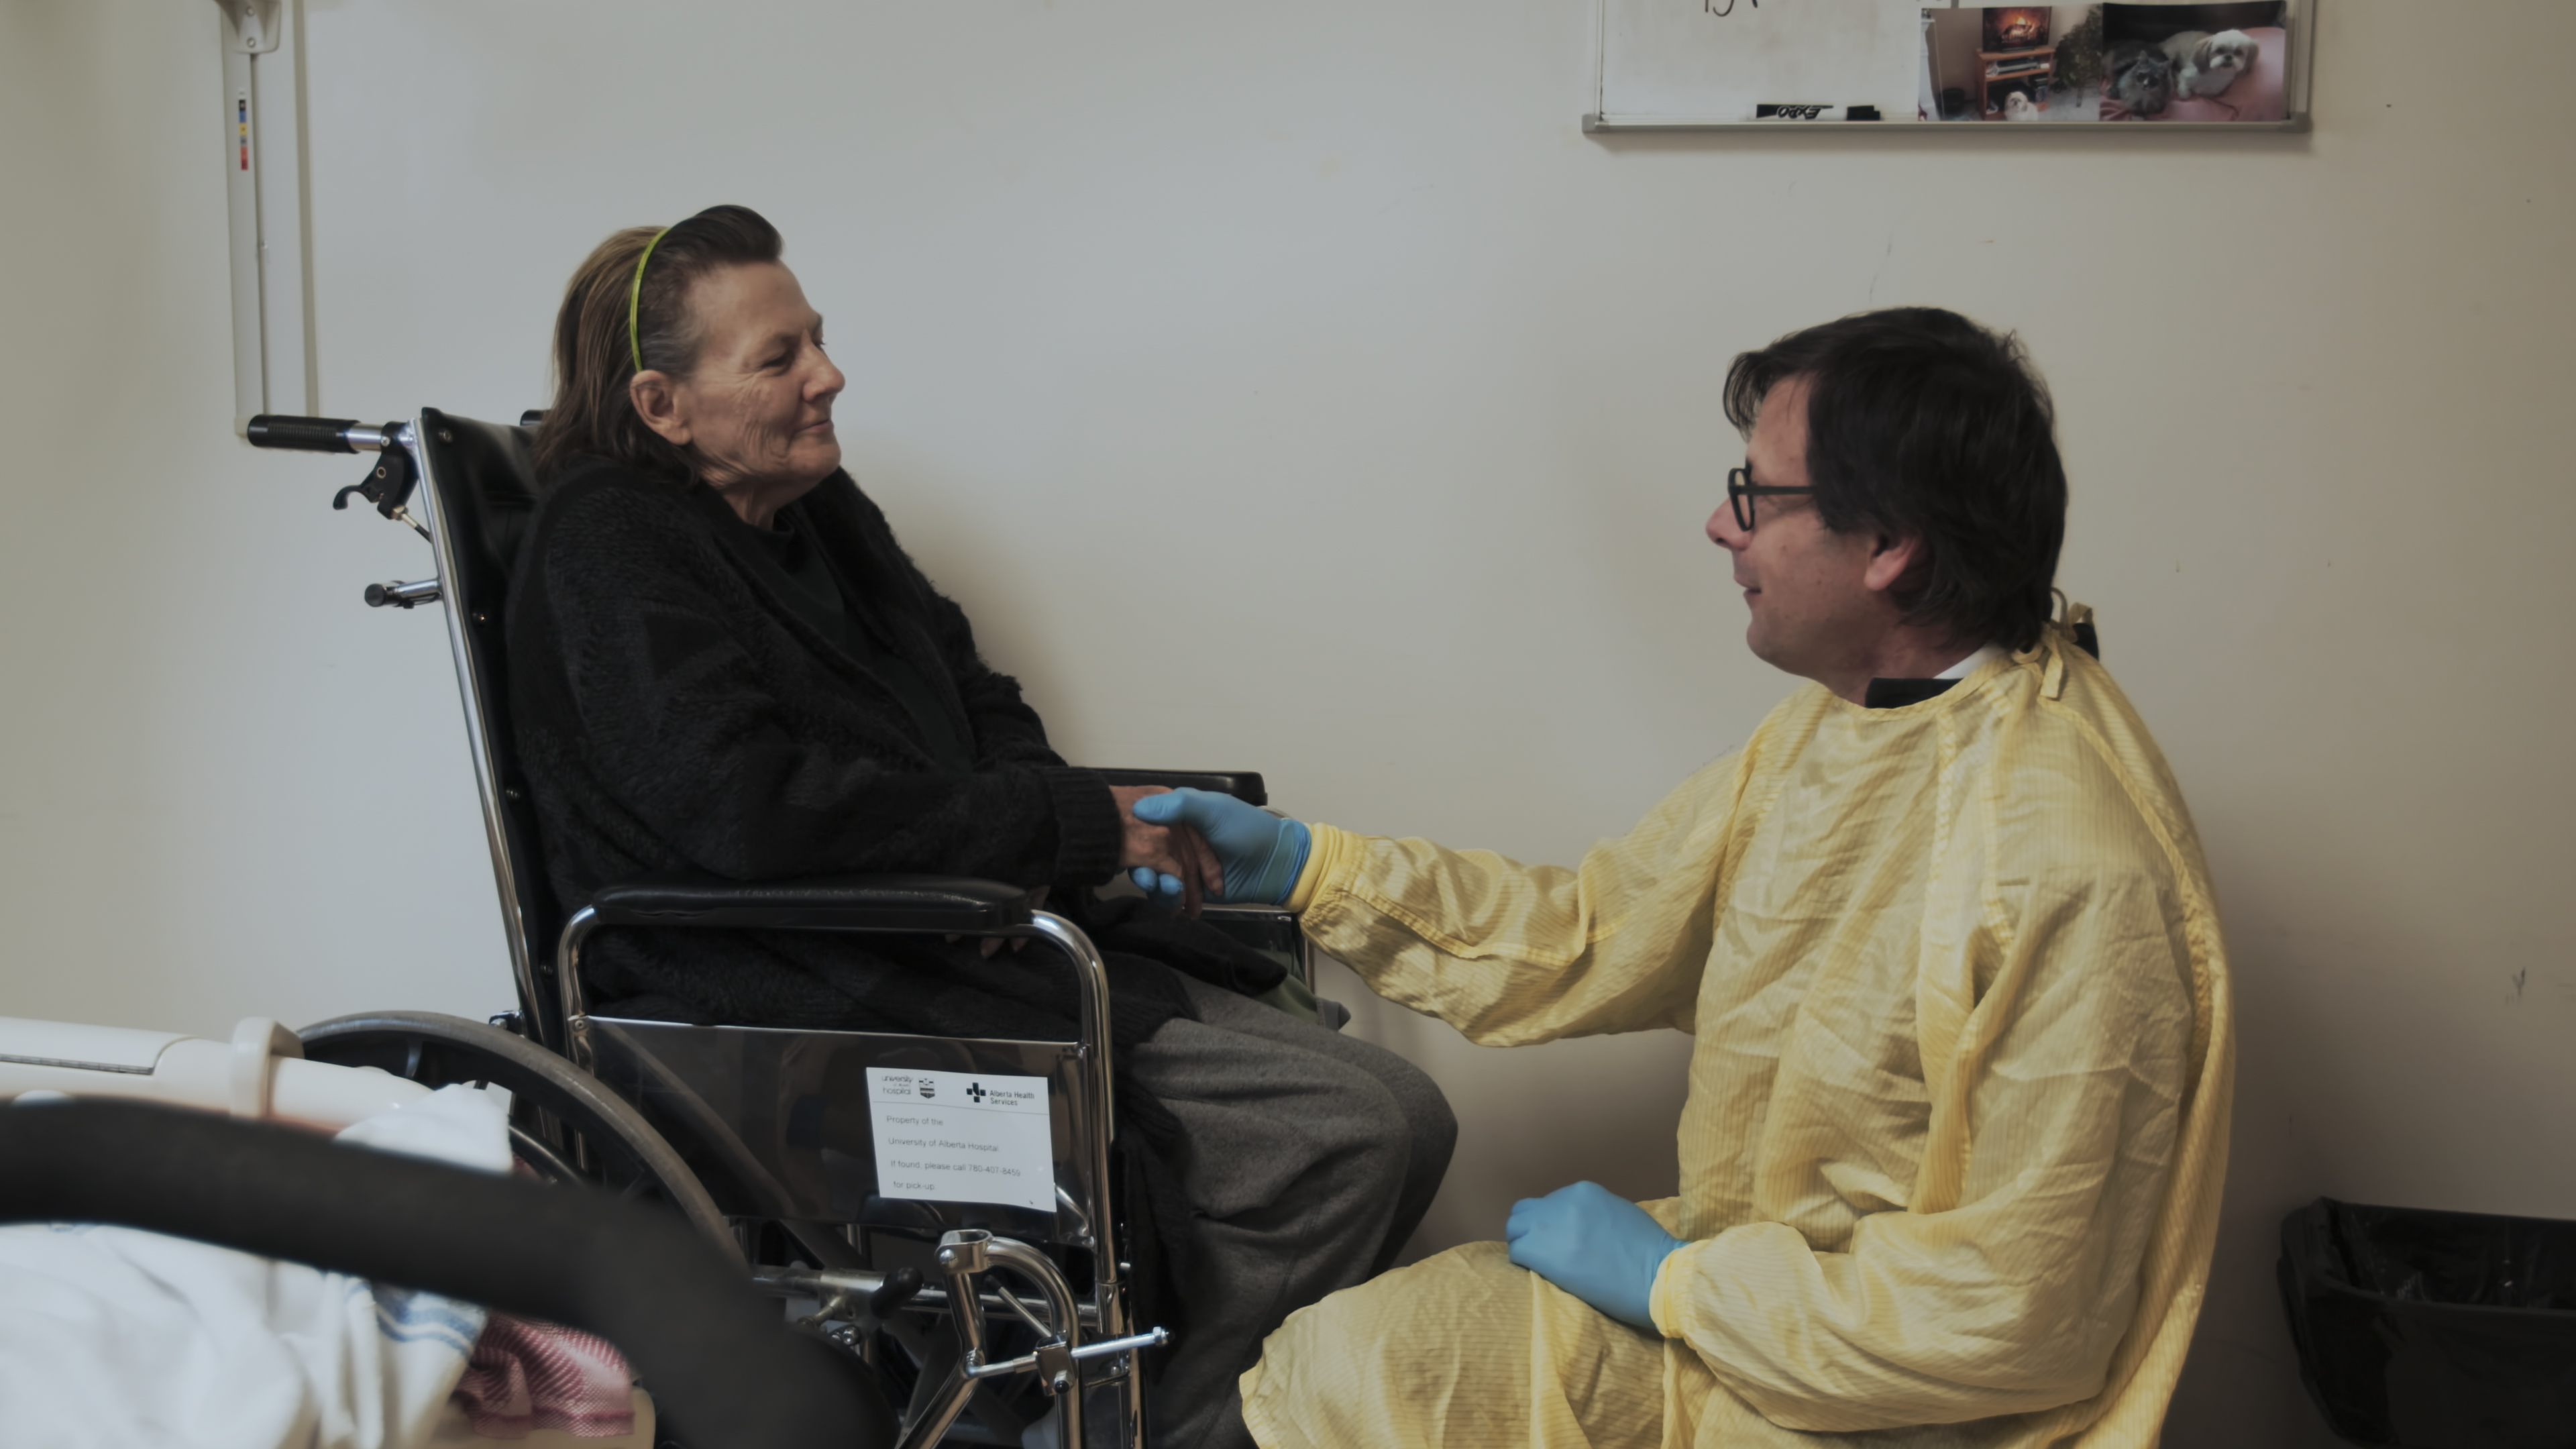 James Shapiro meets a patient following her transplant operation